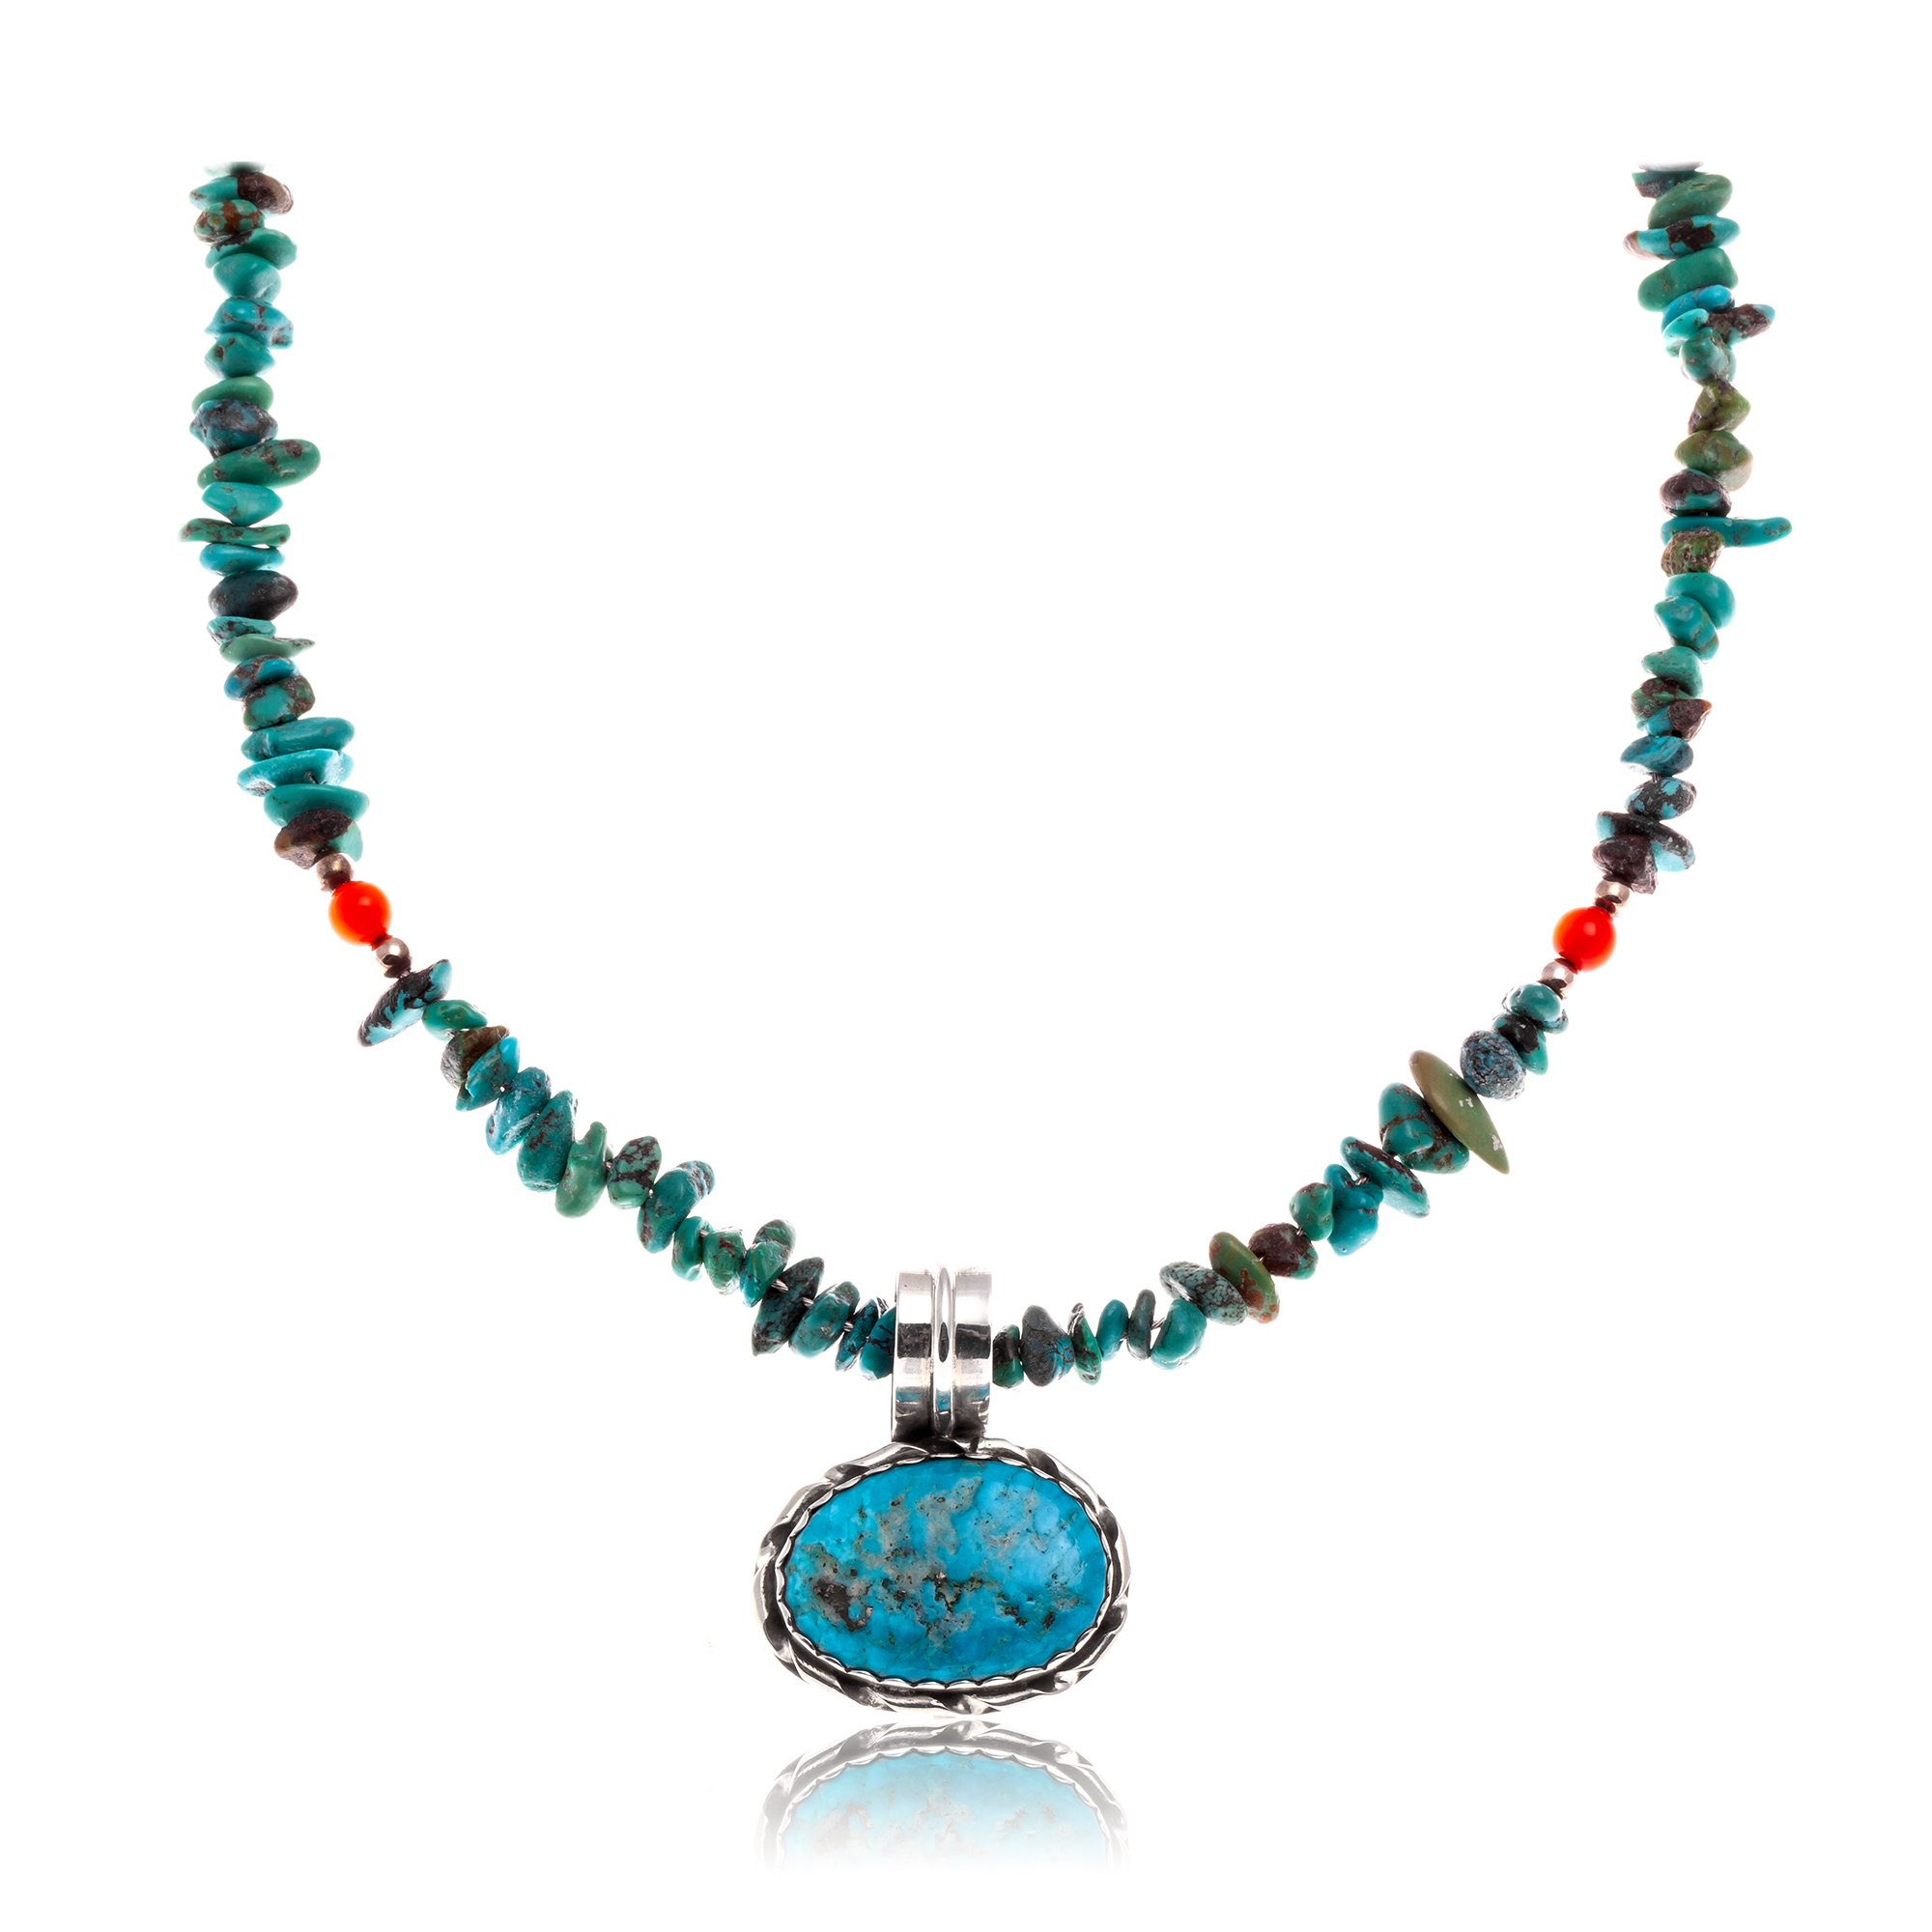 Natural Turquoise .925 Sterling Silver Certified Authentic Navajo Native American Handmade Necklace and Pendant 370989696233 All Products NB370989696233 370989696233 (by LomaSiiva)